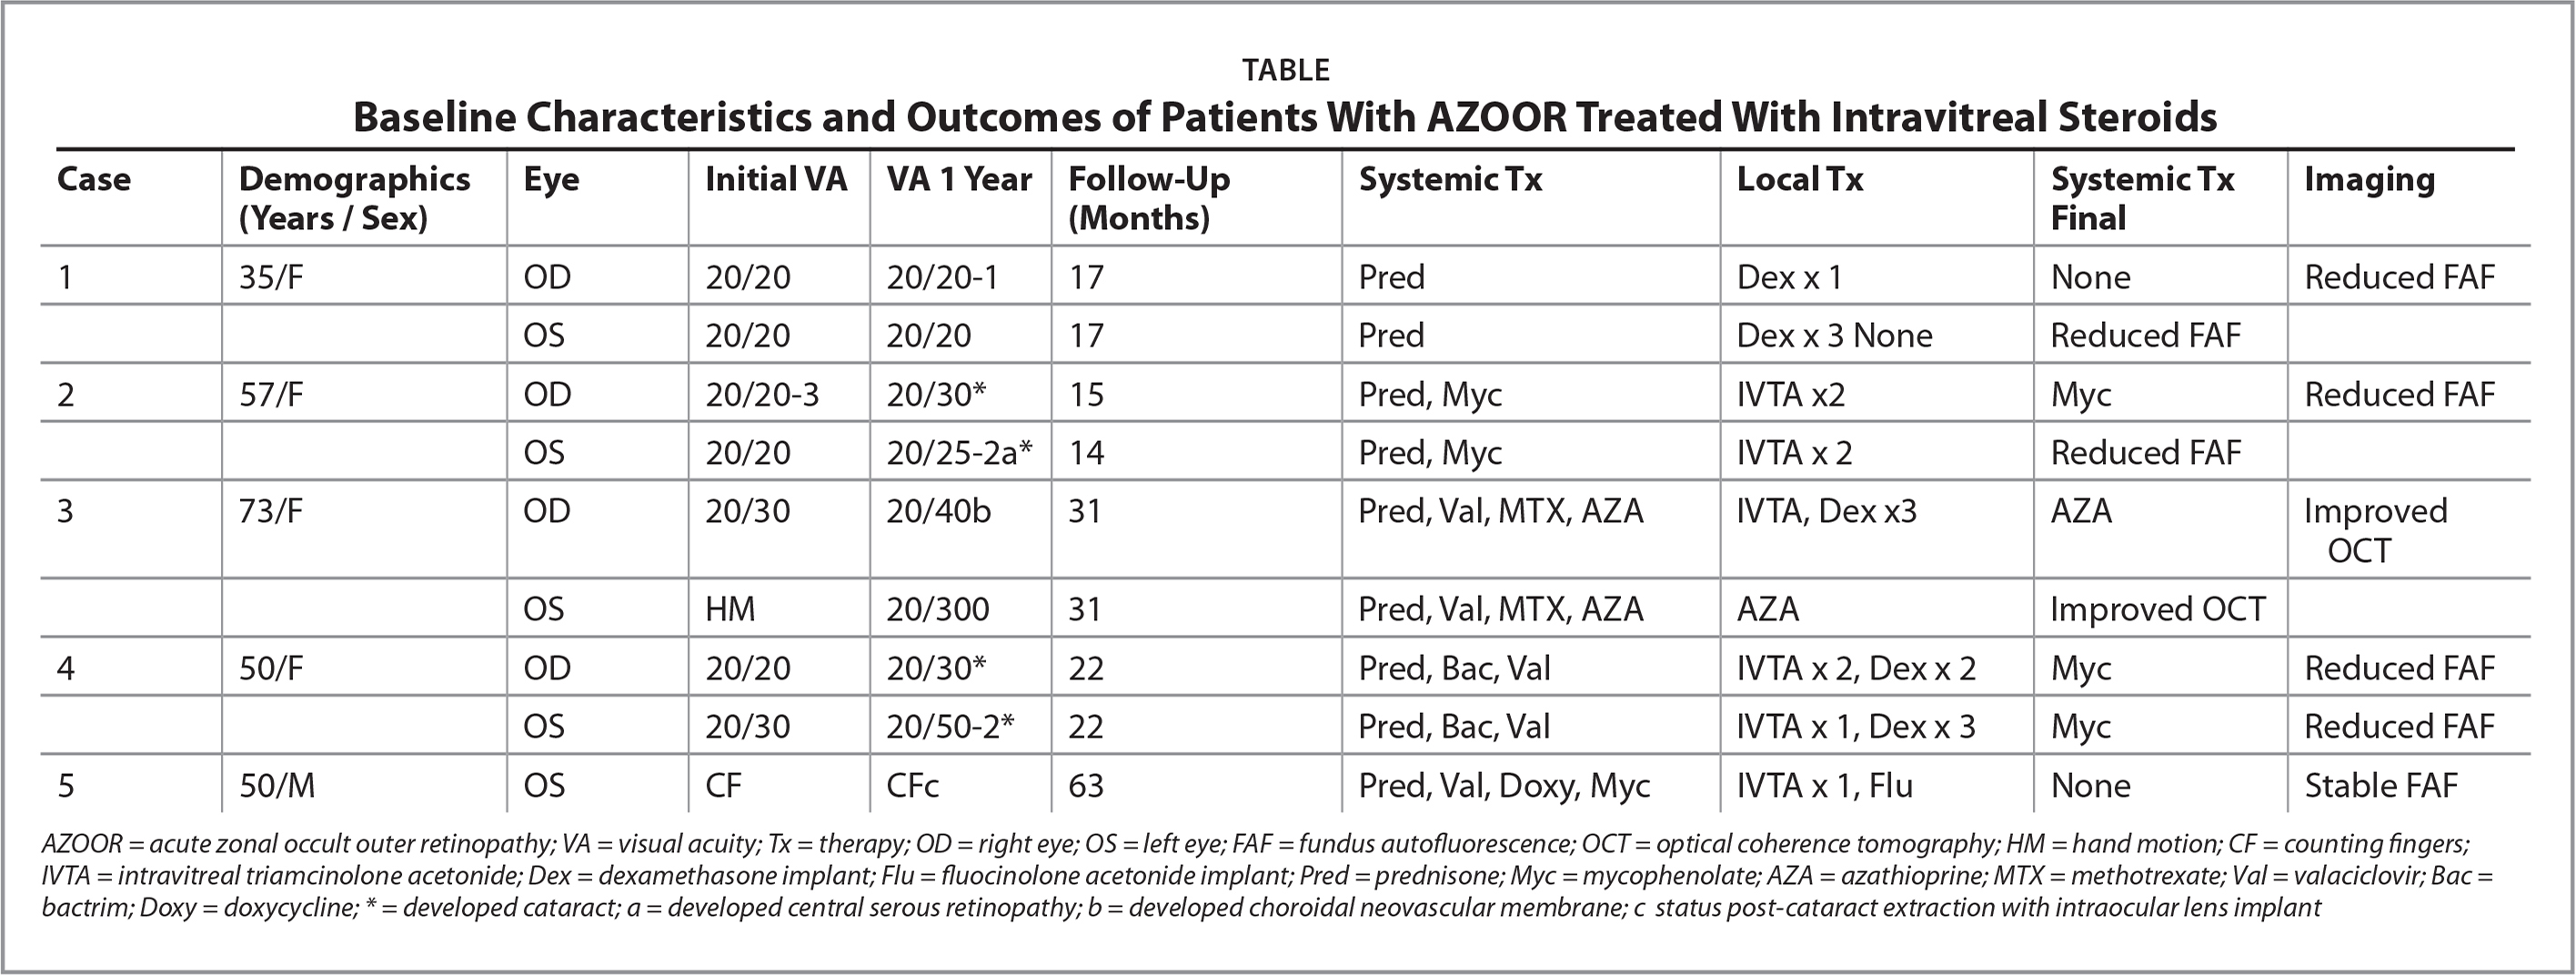 Baseline Characteristics and Outcomes of Patients With AZOOR Treated With Intravitreal Steroids